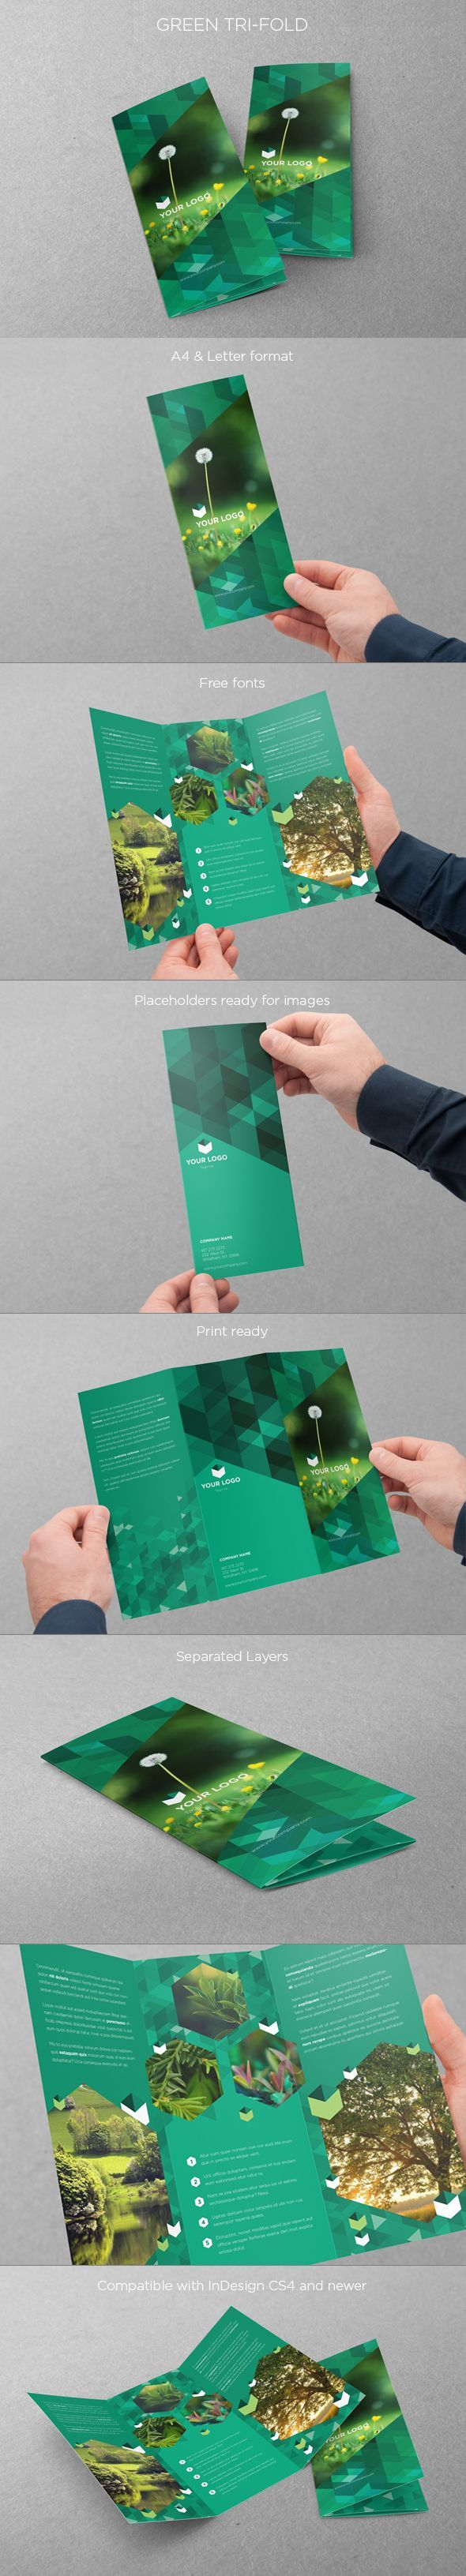 design for eco brochures - Google Search